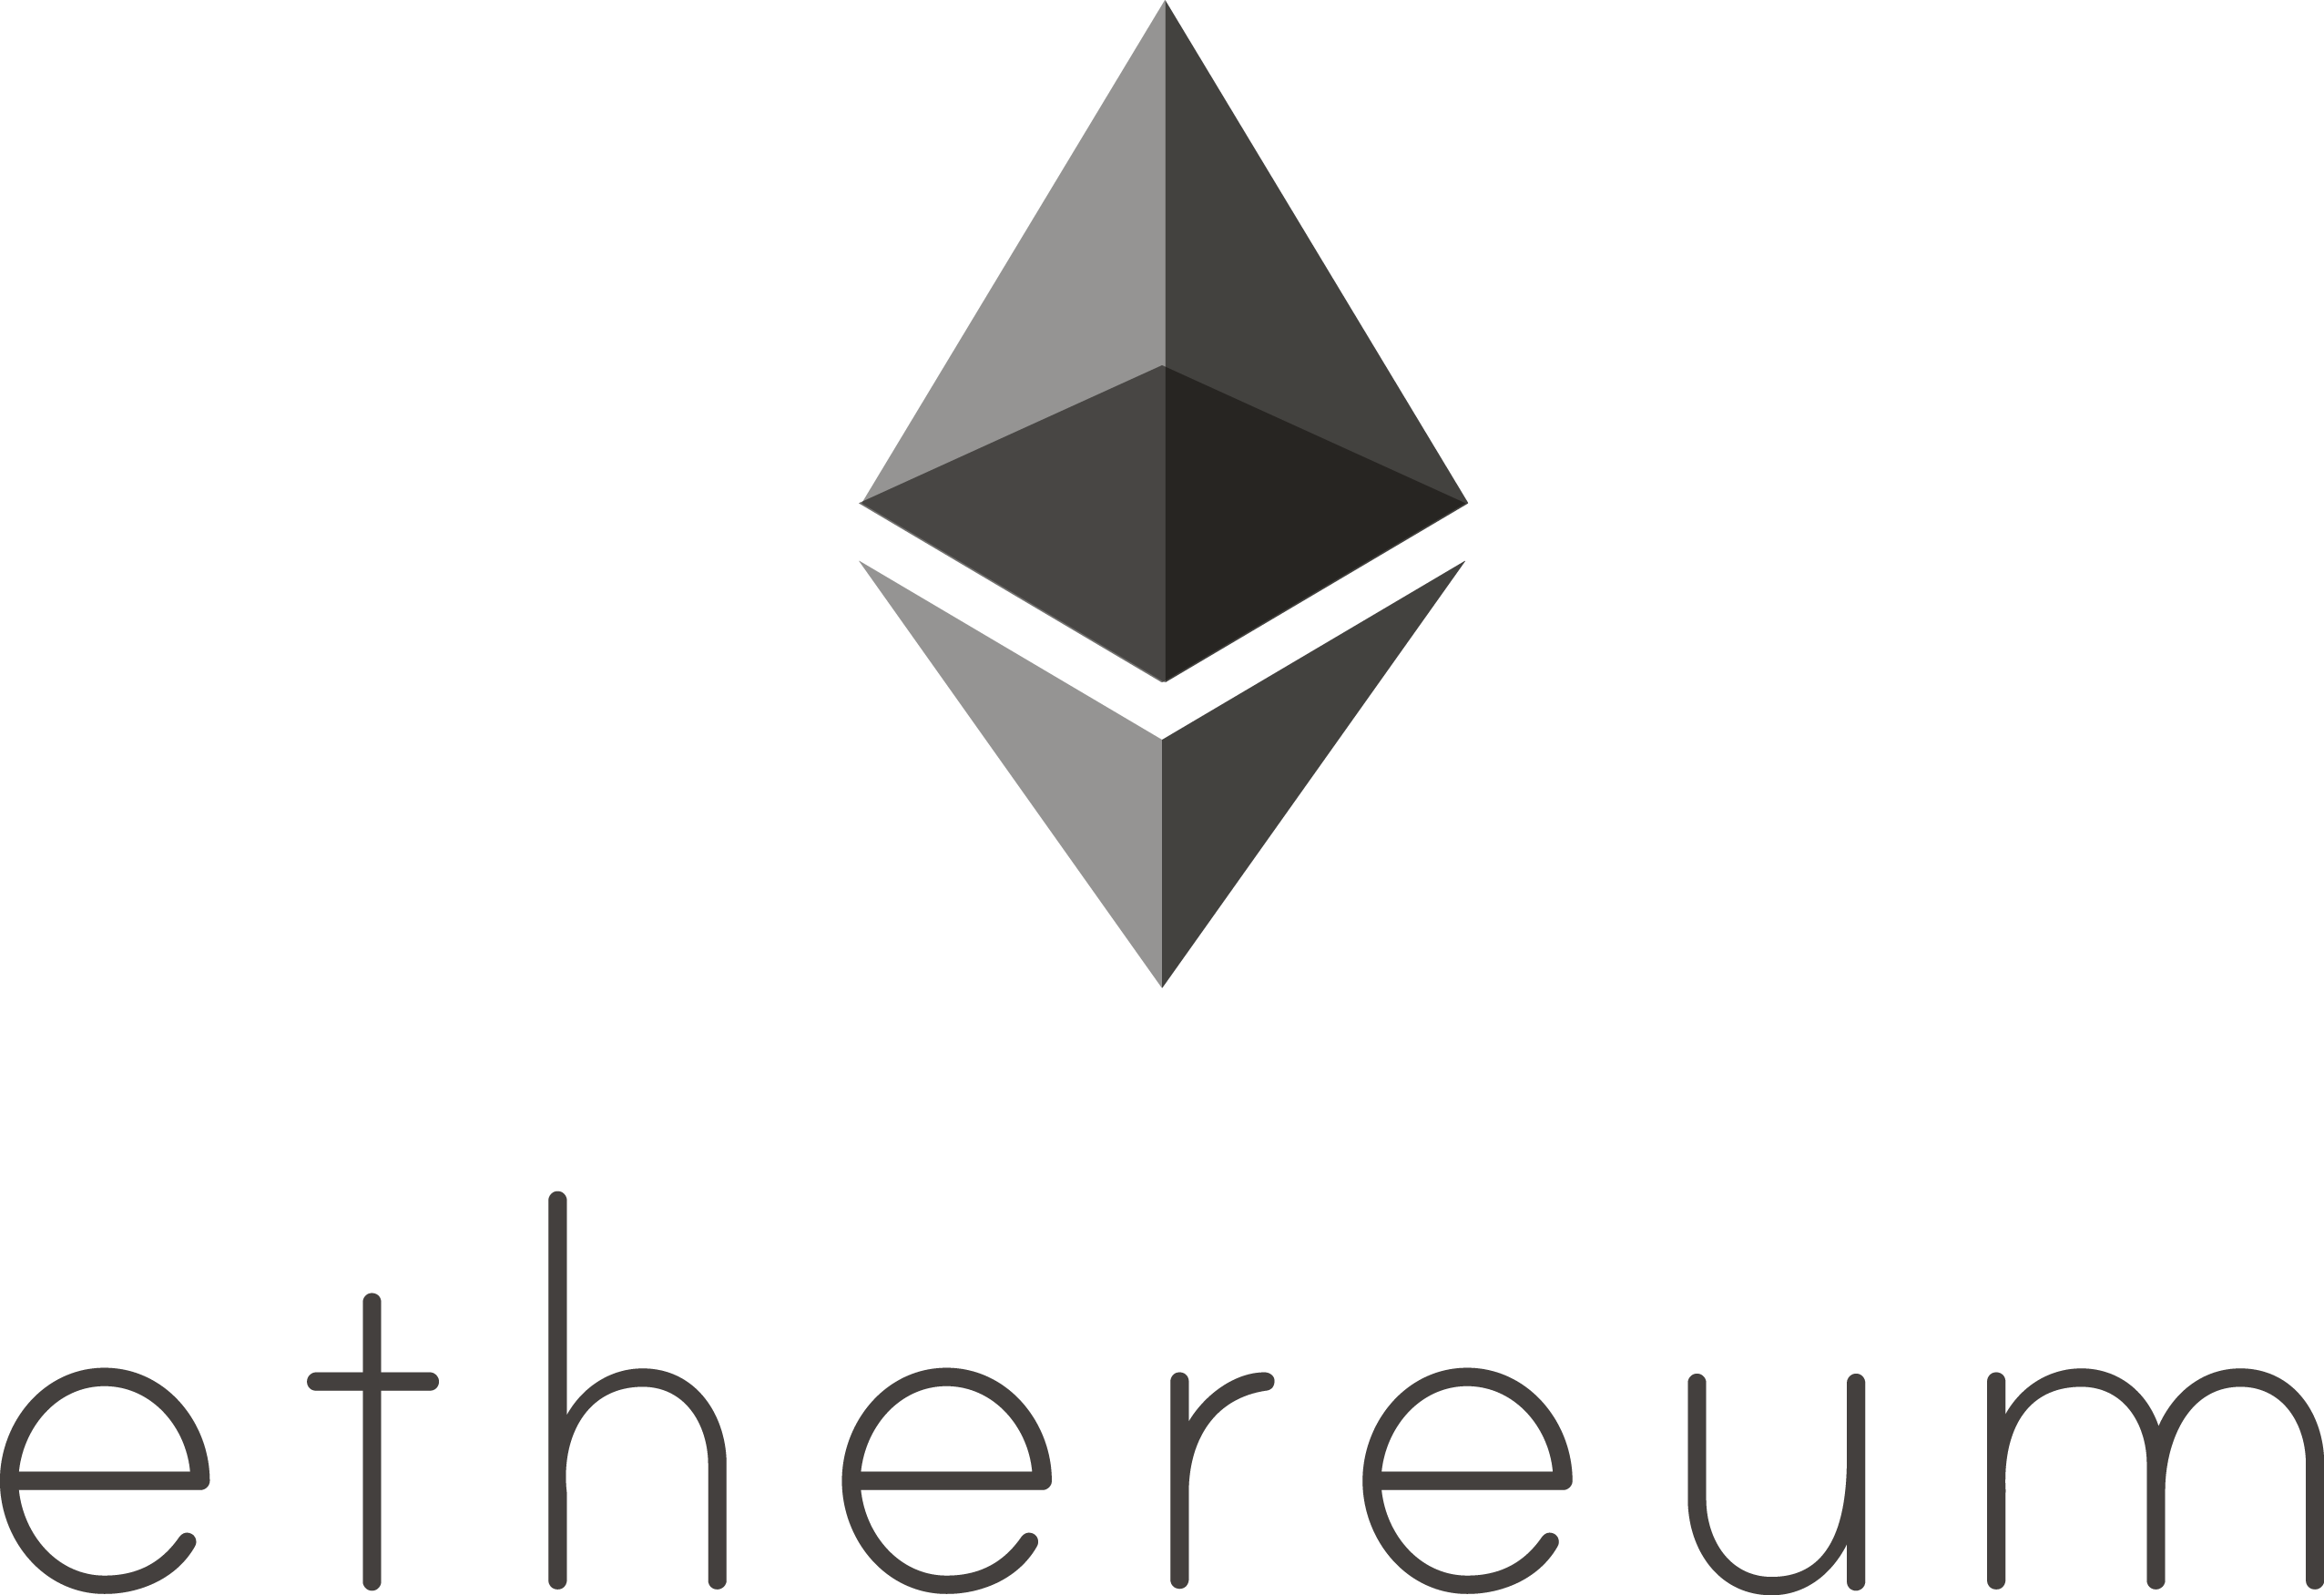 Ethereum Logo In 2020 Bitcoin Cryptocurrency Crypto Currencies